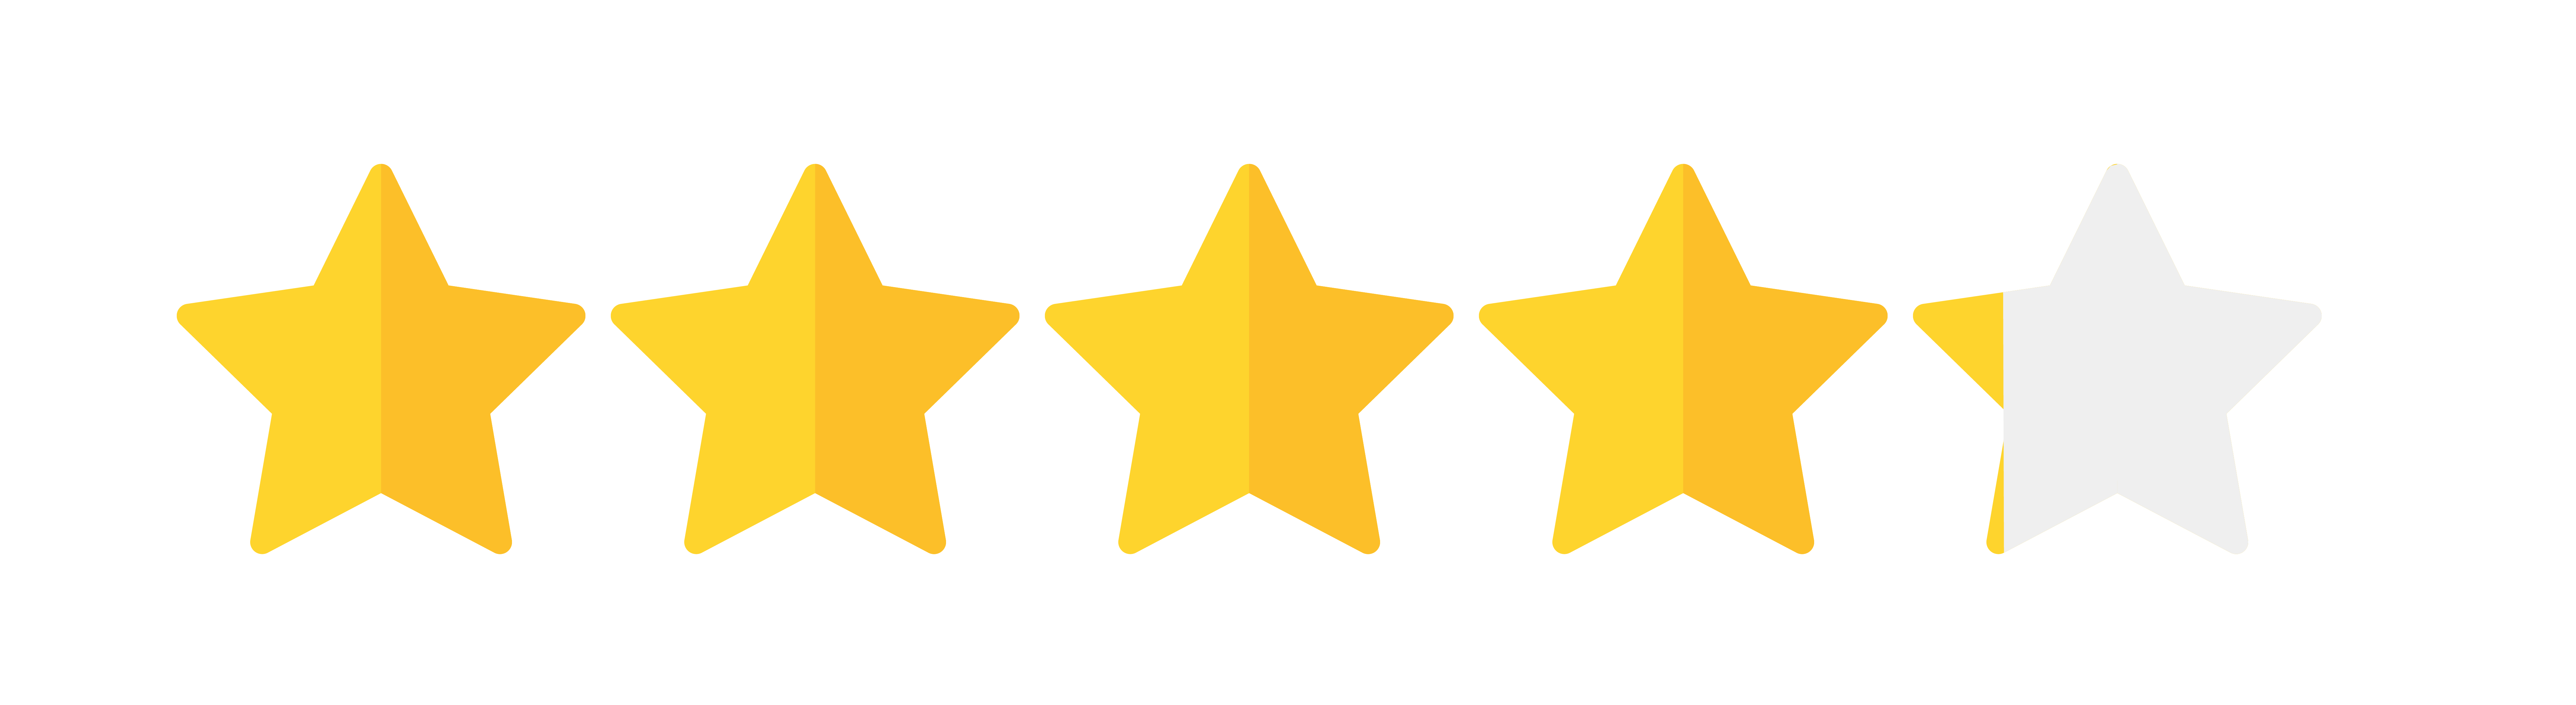 4.1 star-01.png